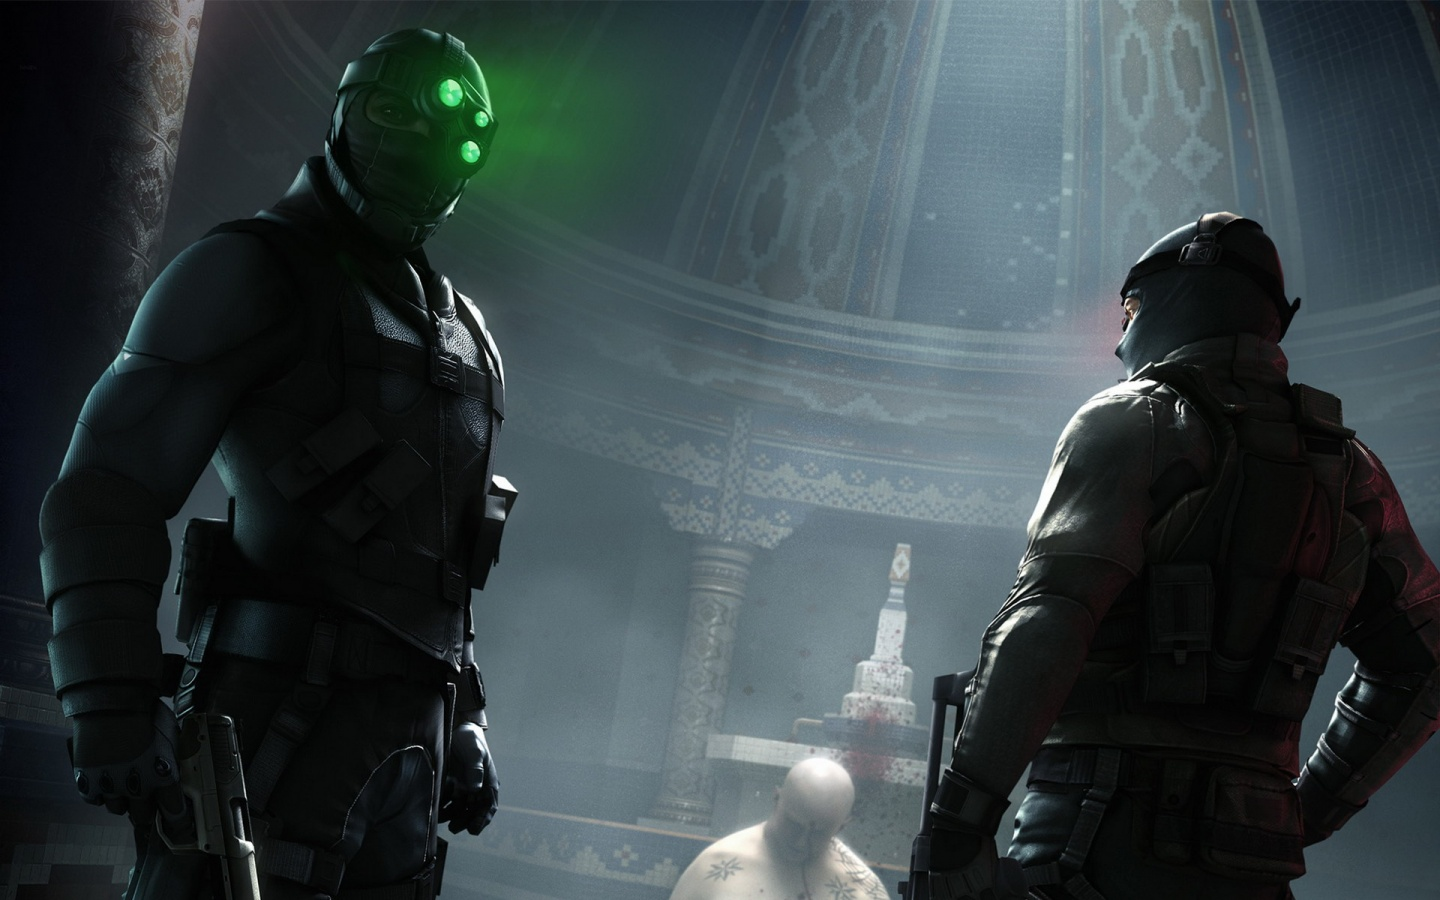 Splinter Cell Conviction 2010 Game #4188685, 1920x1200 ...